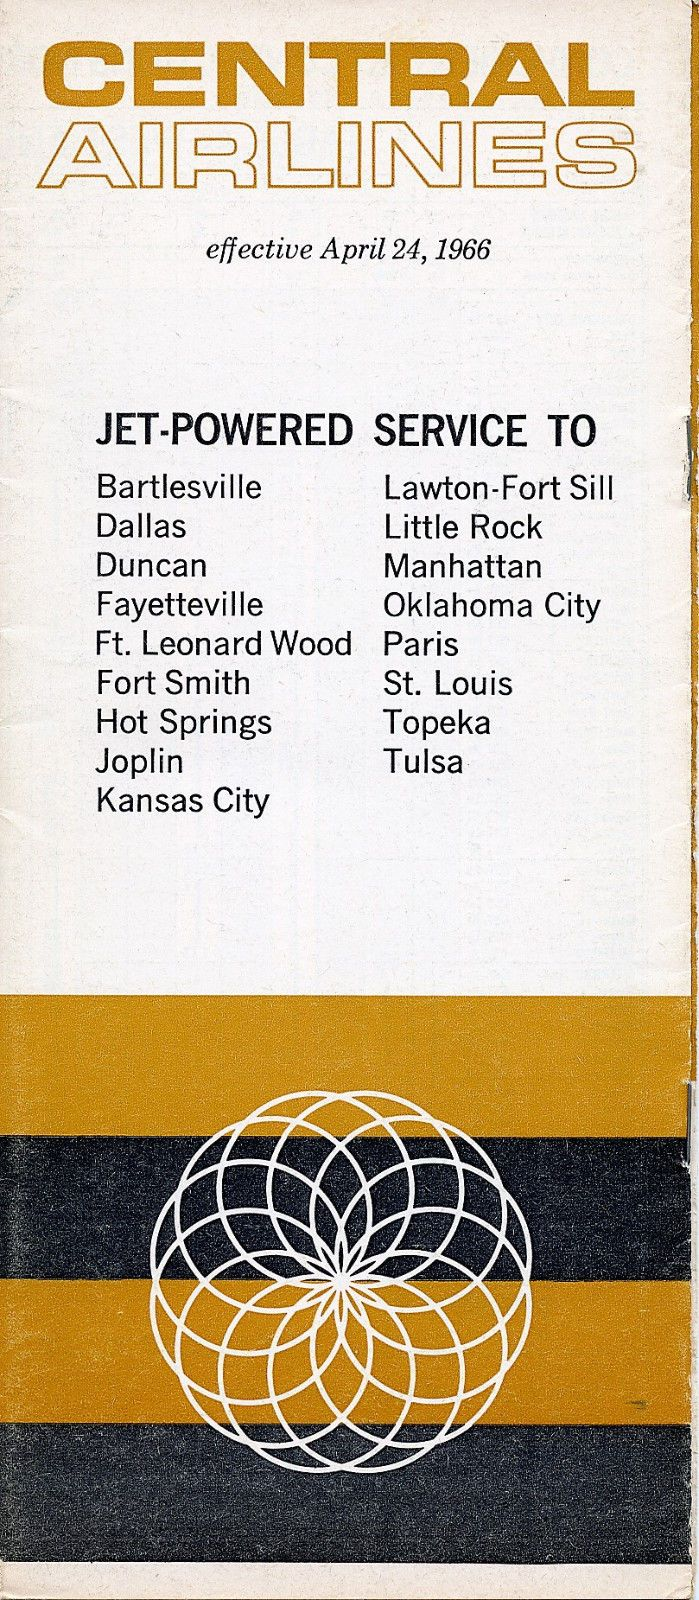 Central Airlines April 24 1966 System Timetable